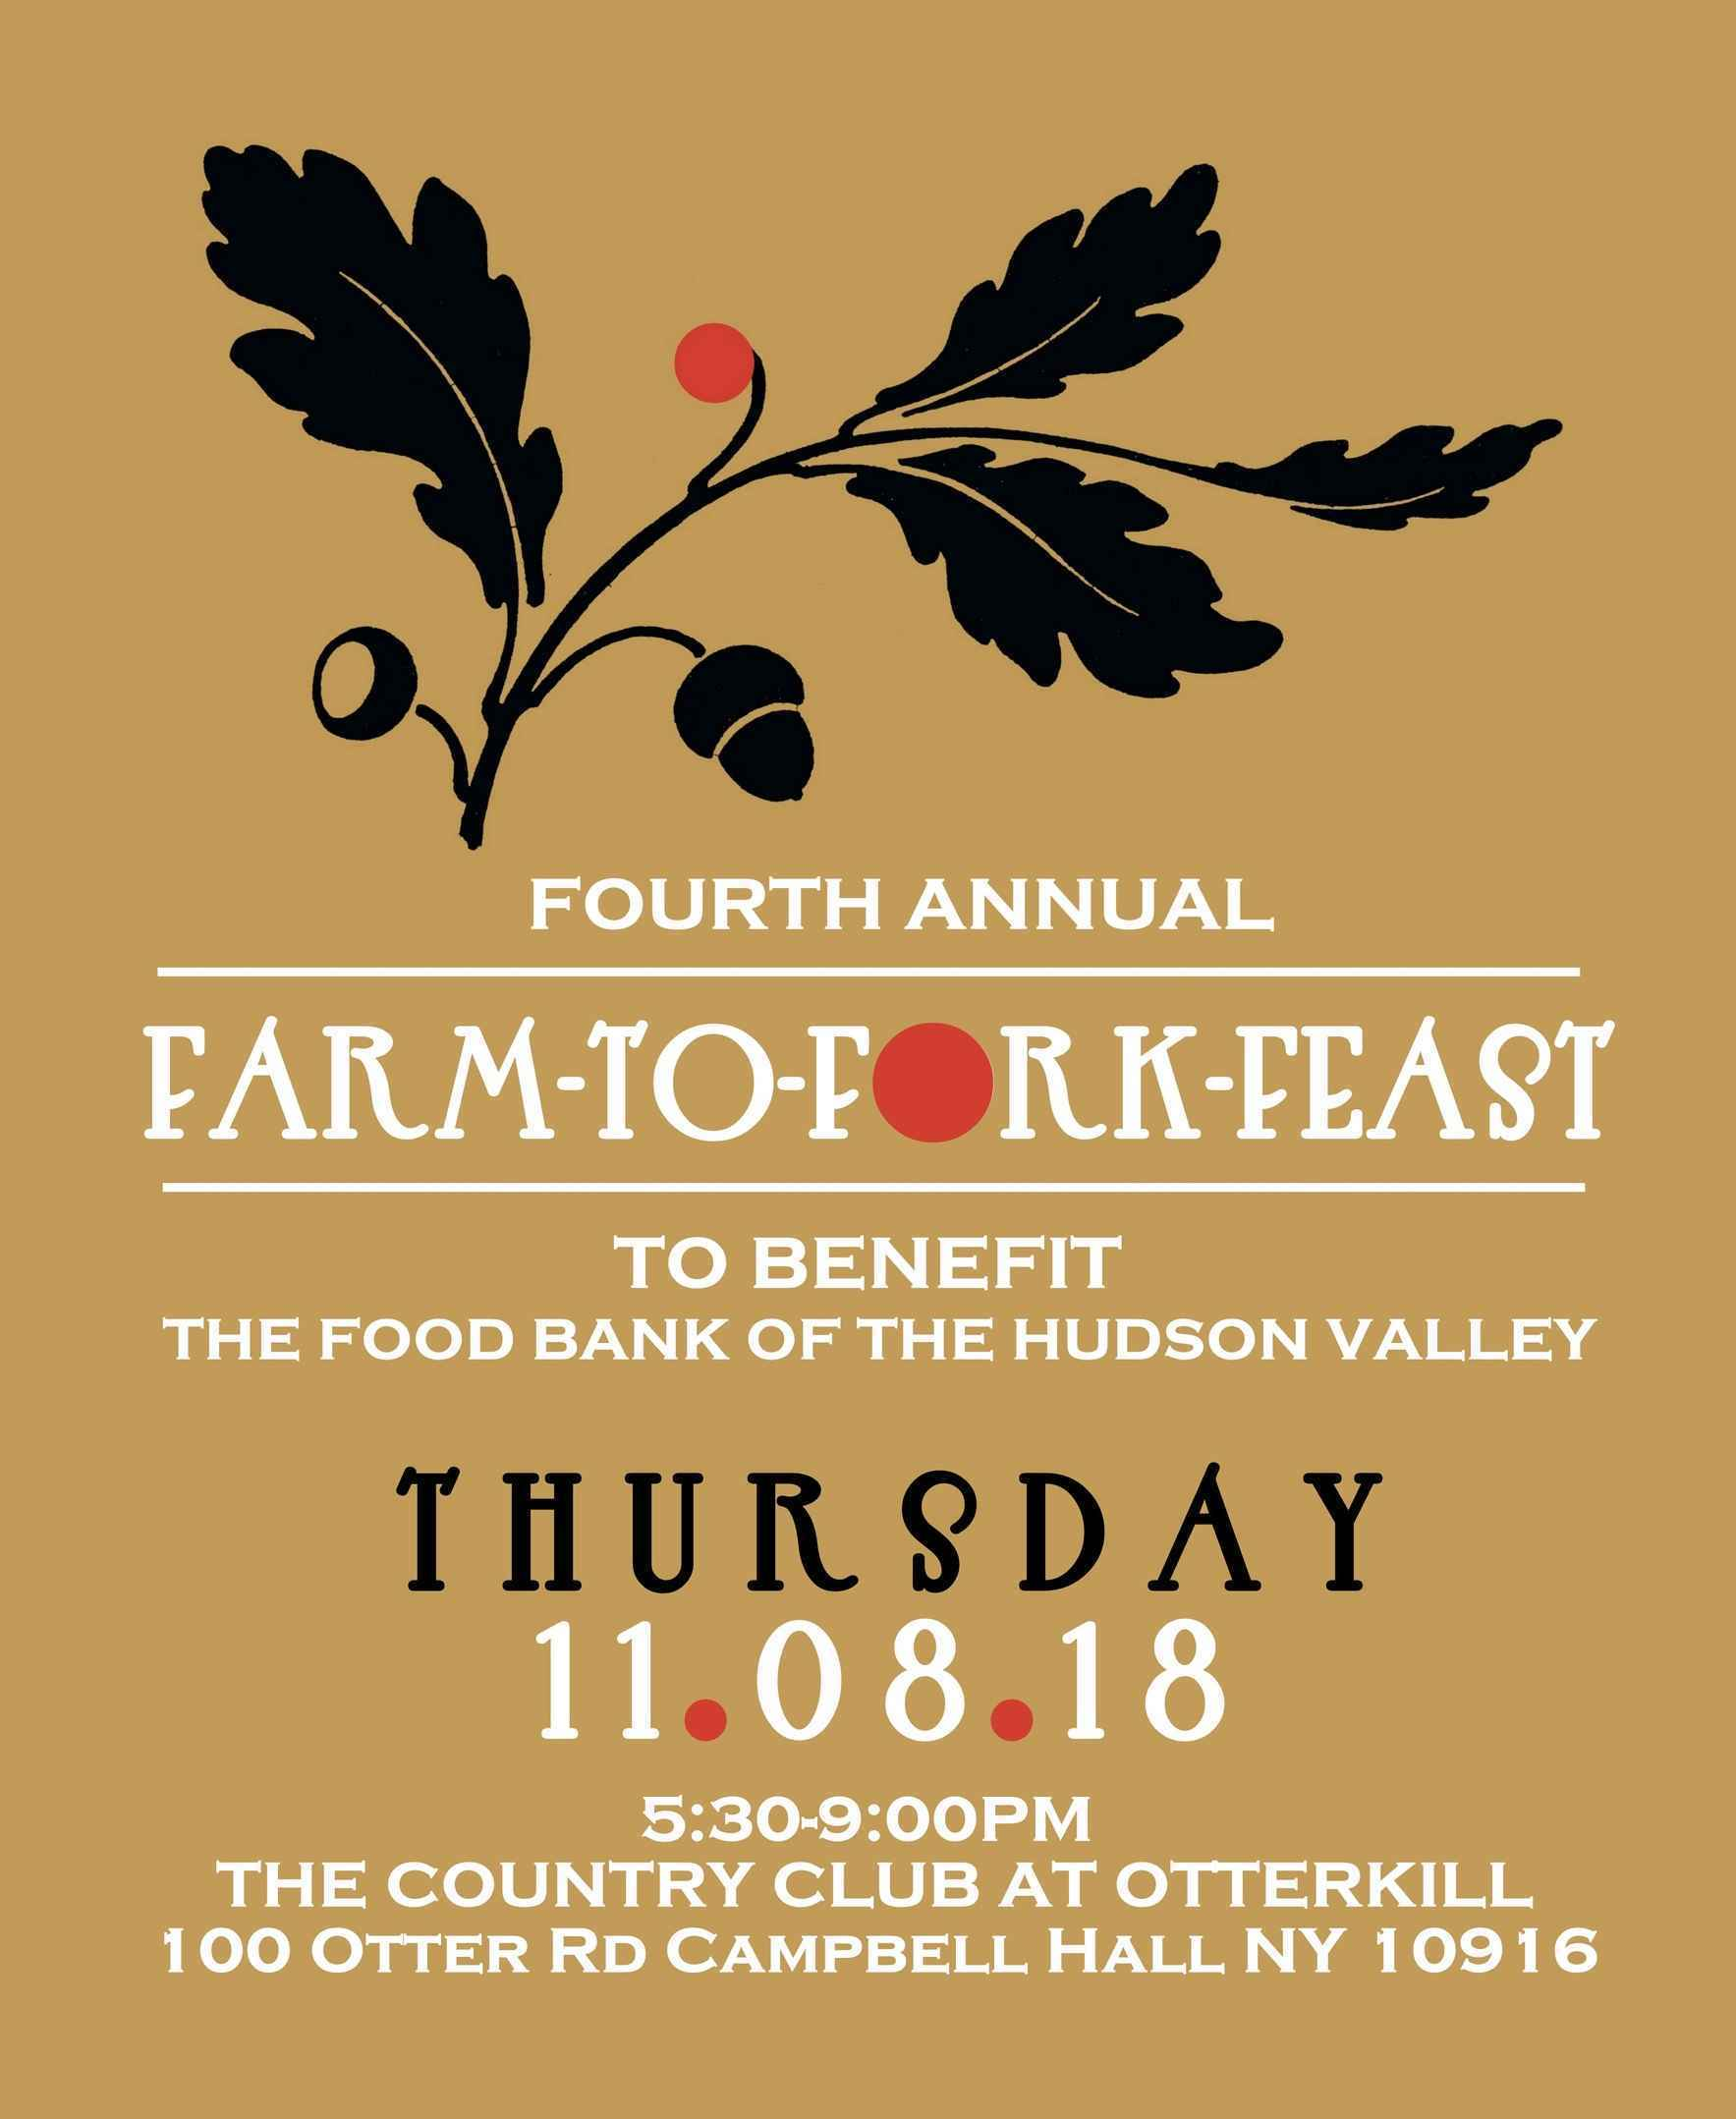 Farm-to-Fork Feast image